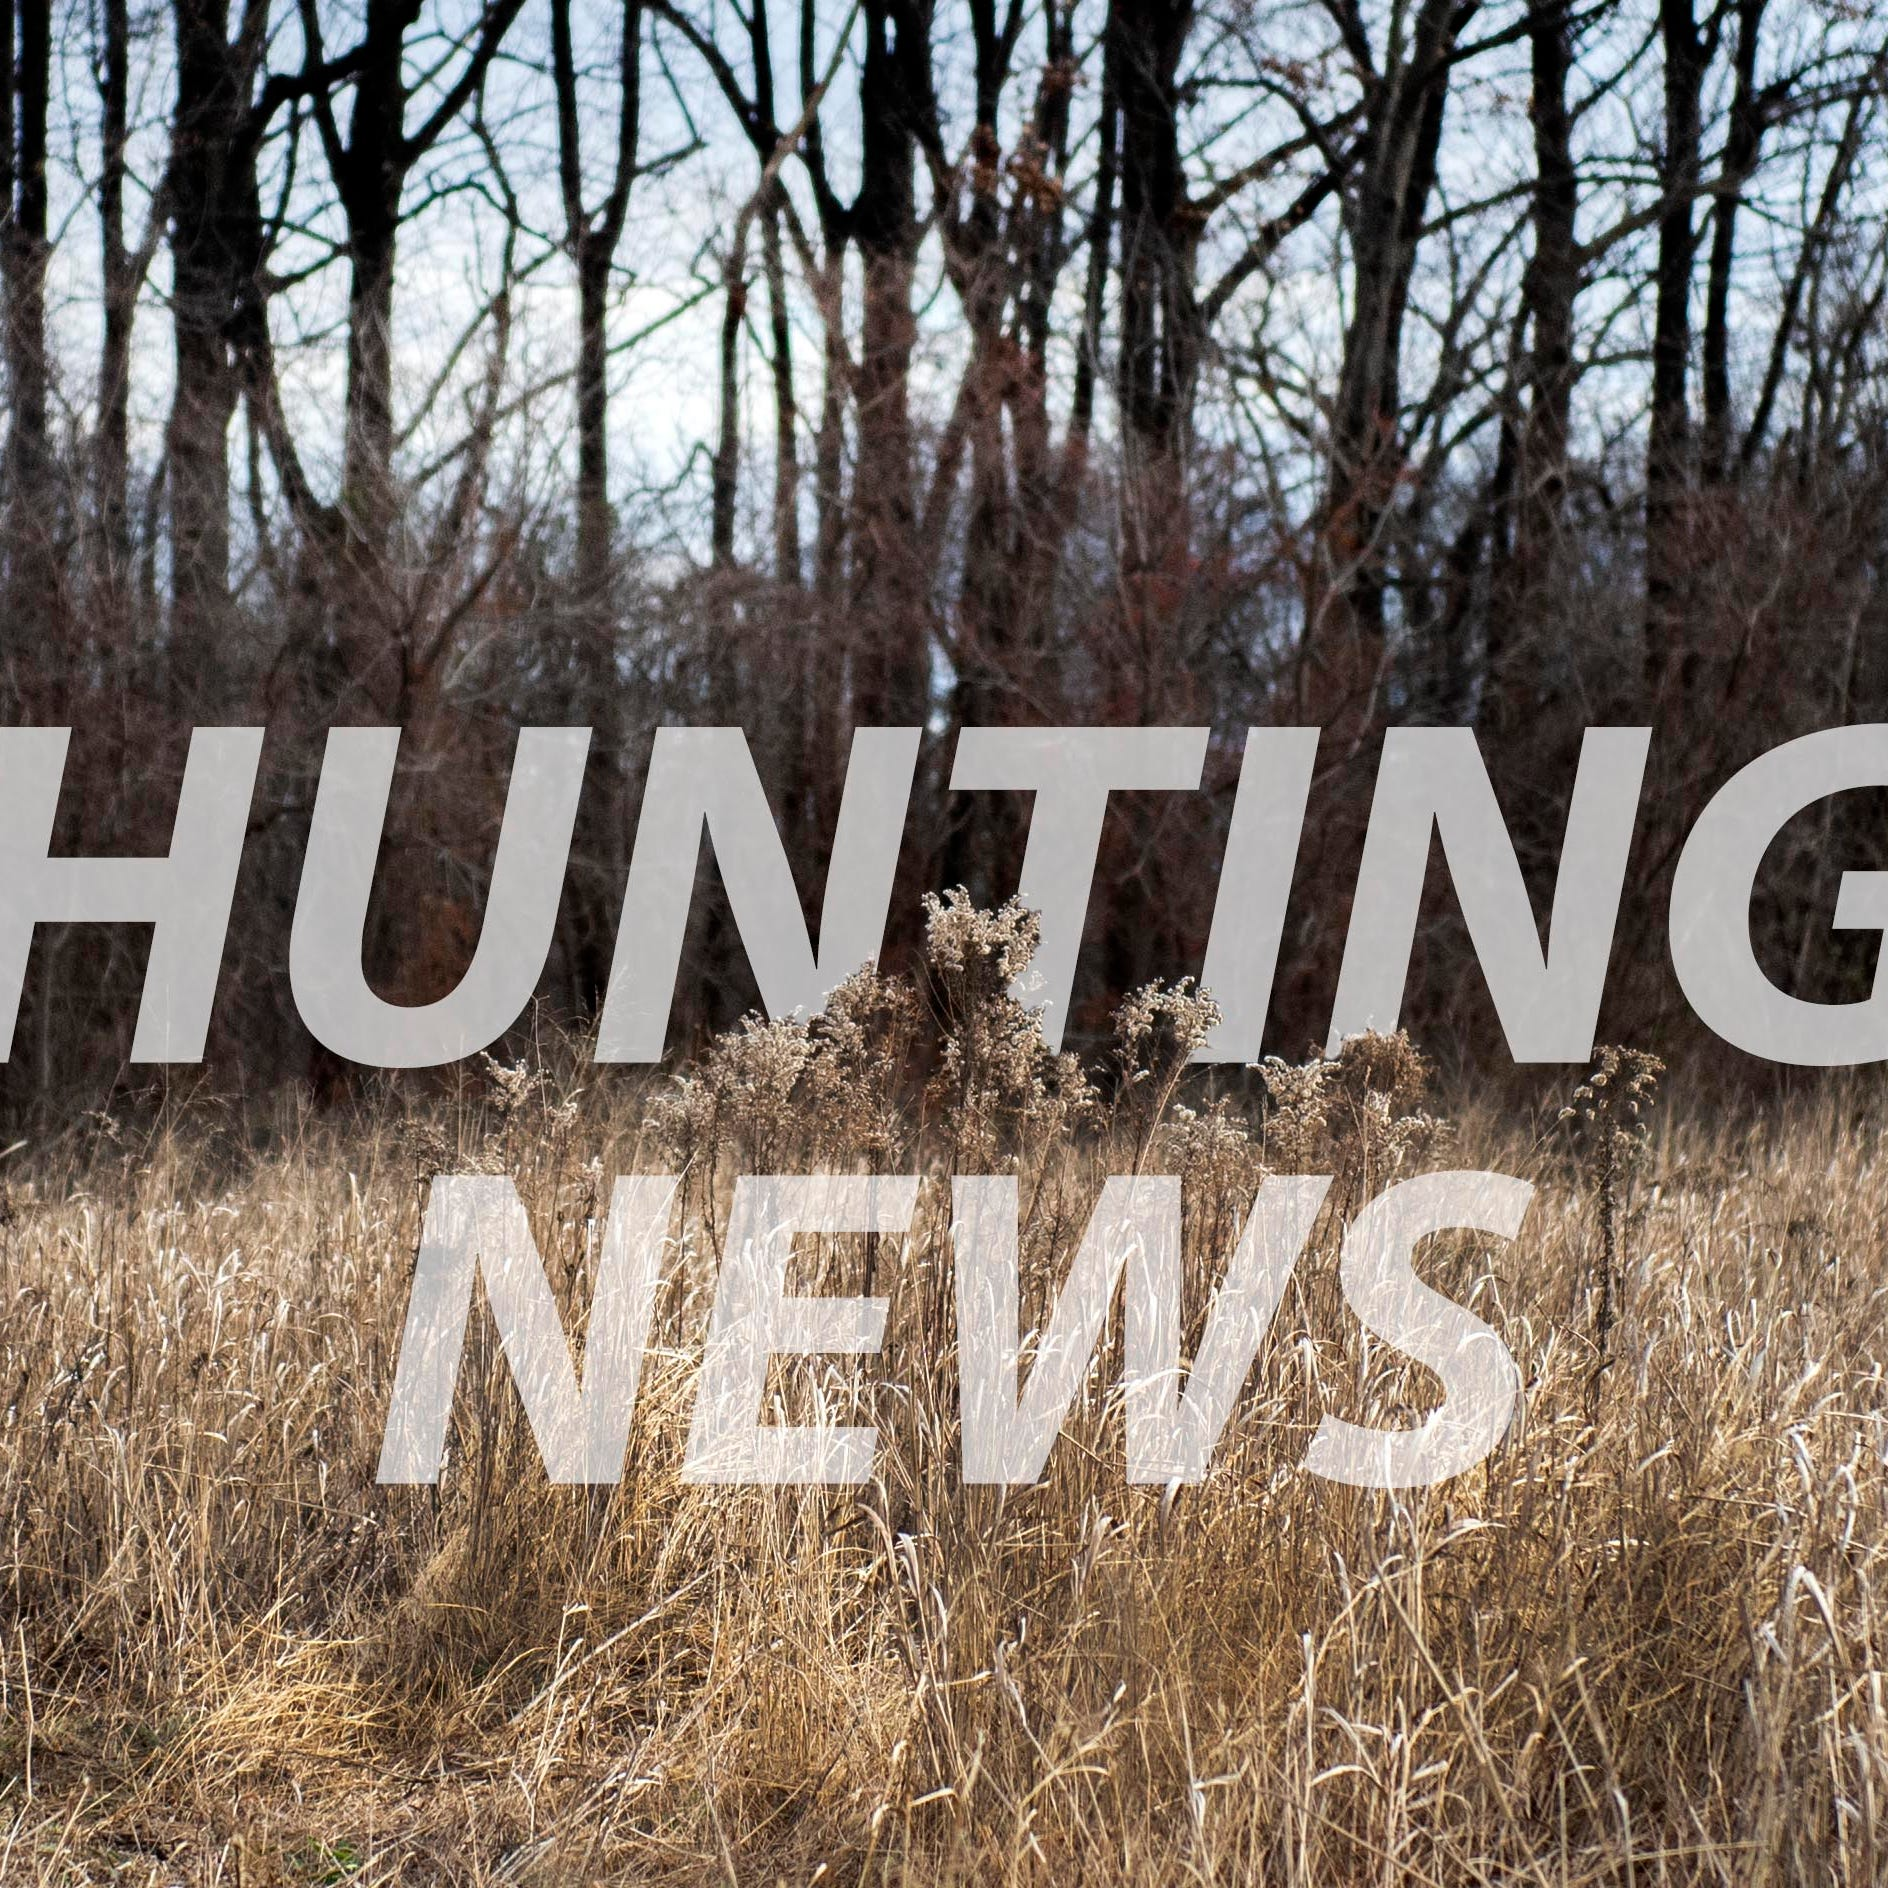 Four men sentenced for using helicopter on sheep hunting trip